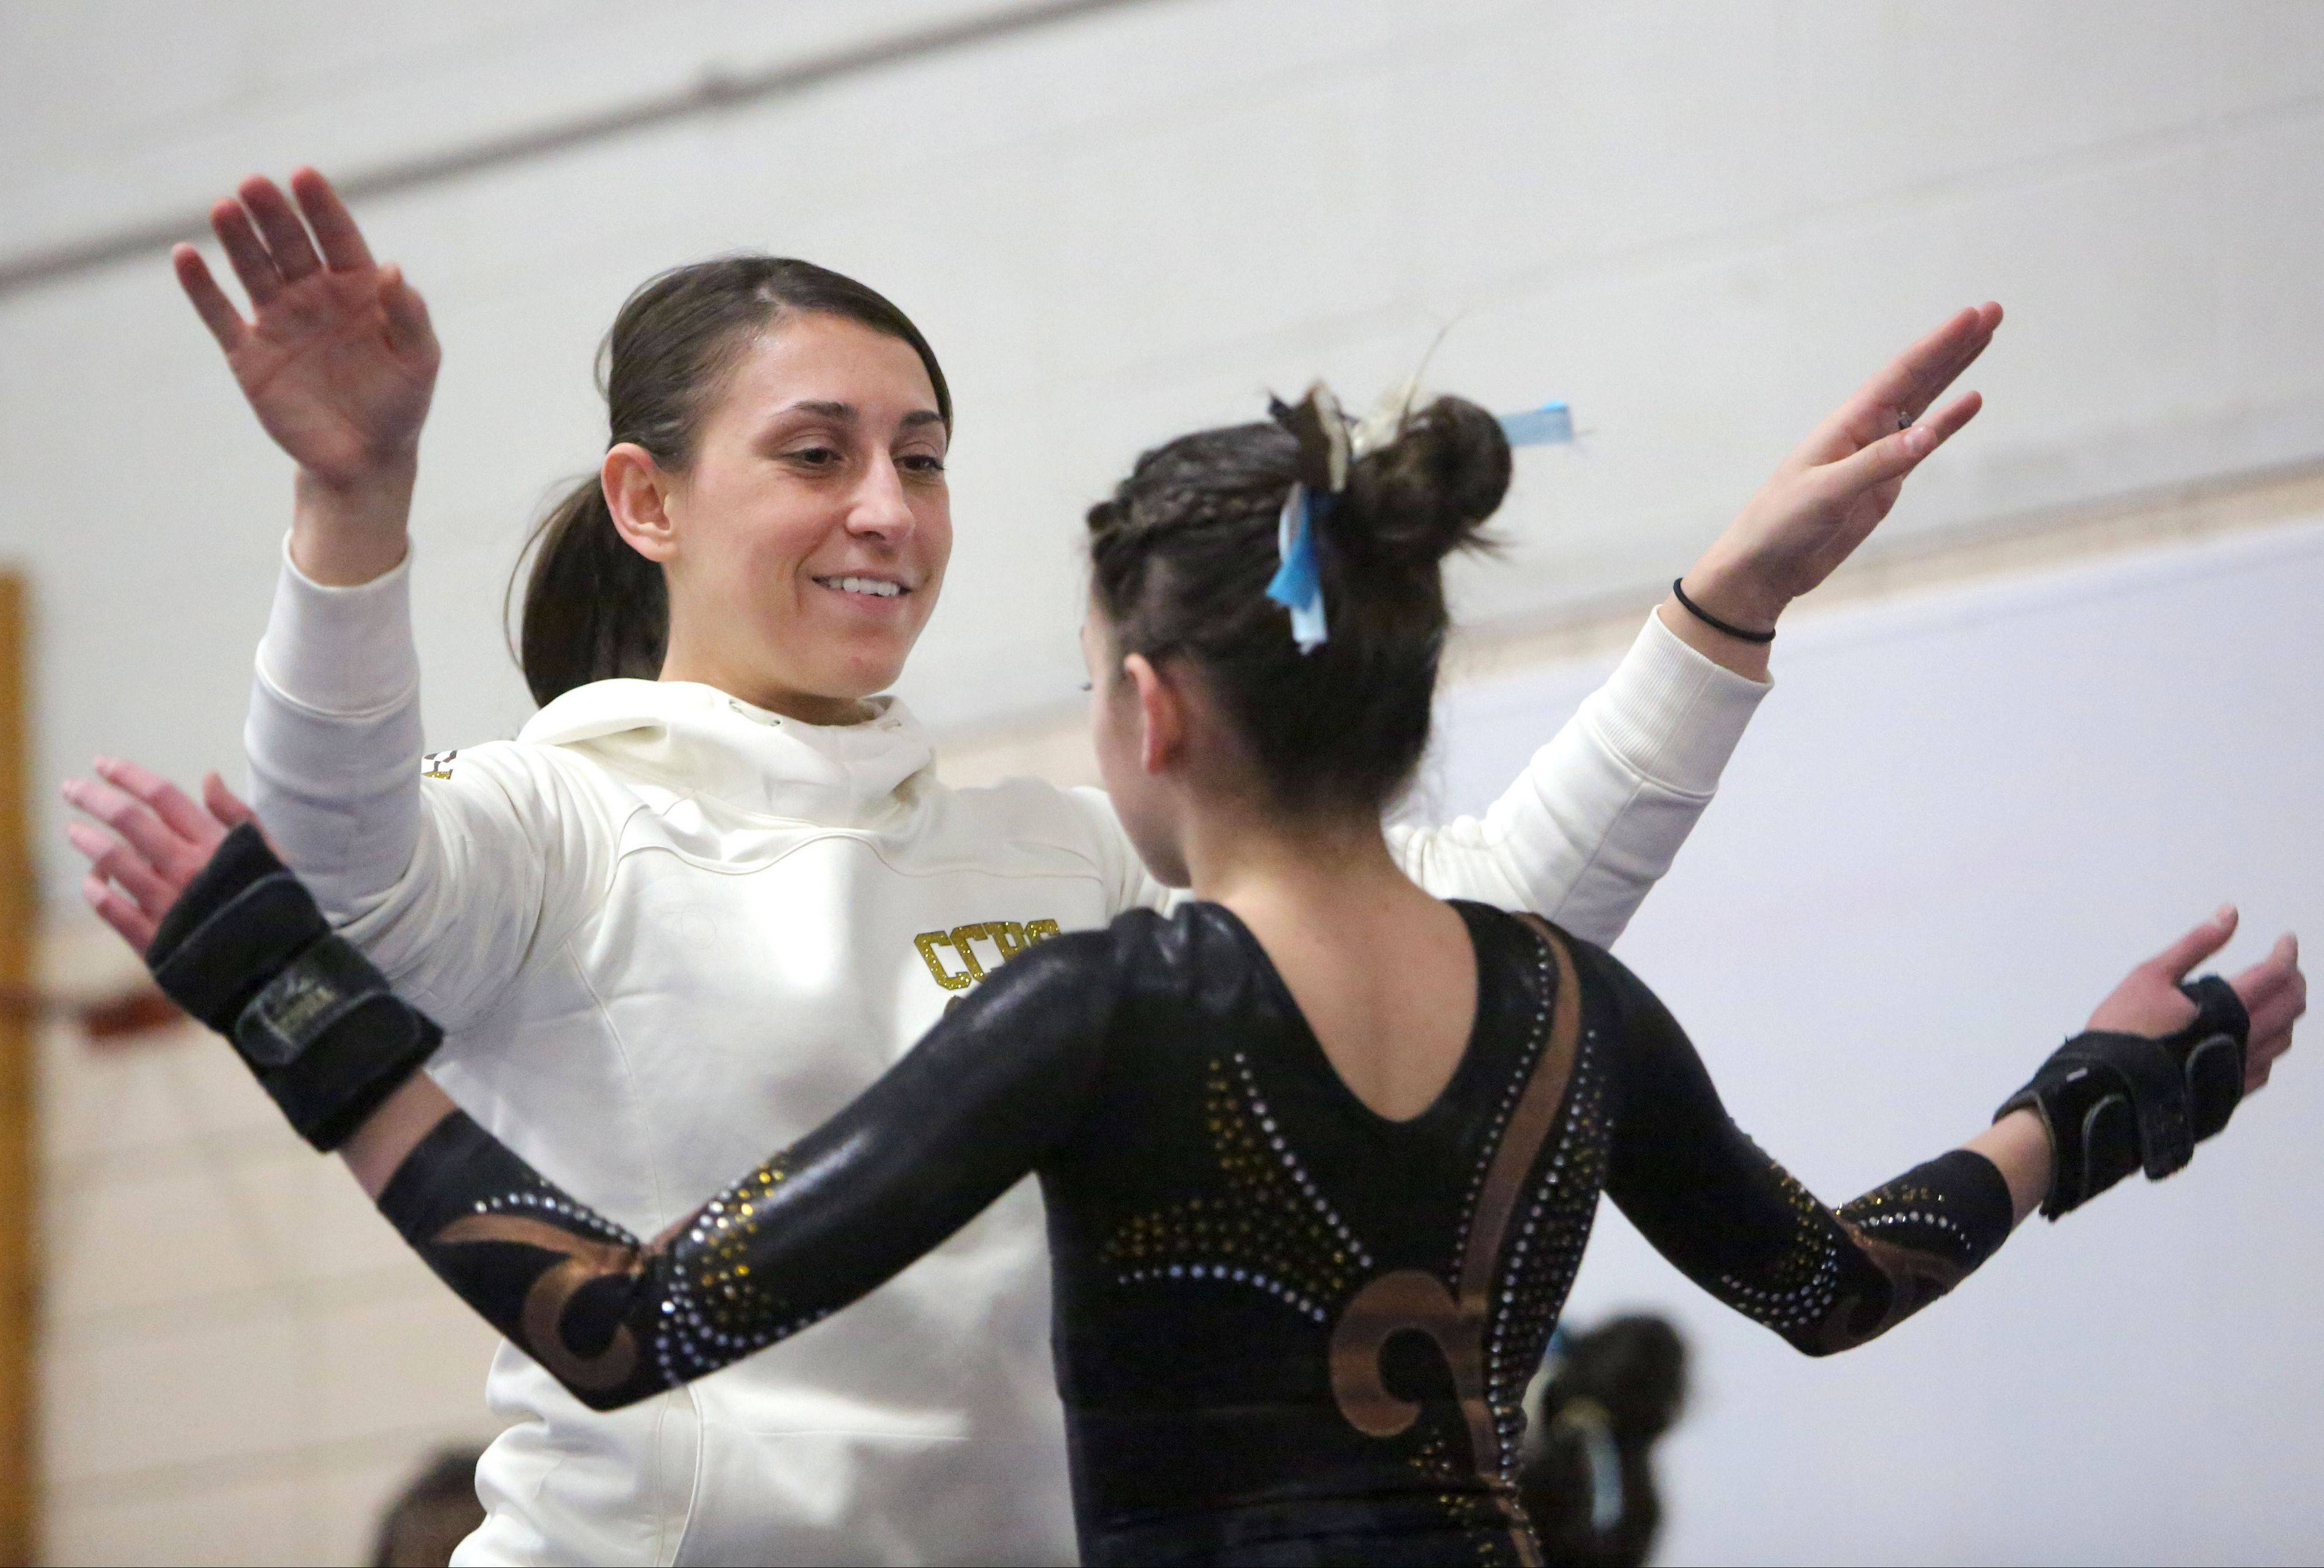 Carmel assistant coach Nicole Stroup celebrates with Alyssa Legerreta after a vault during regional action Tuesday at Deerfield.